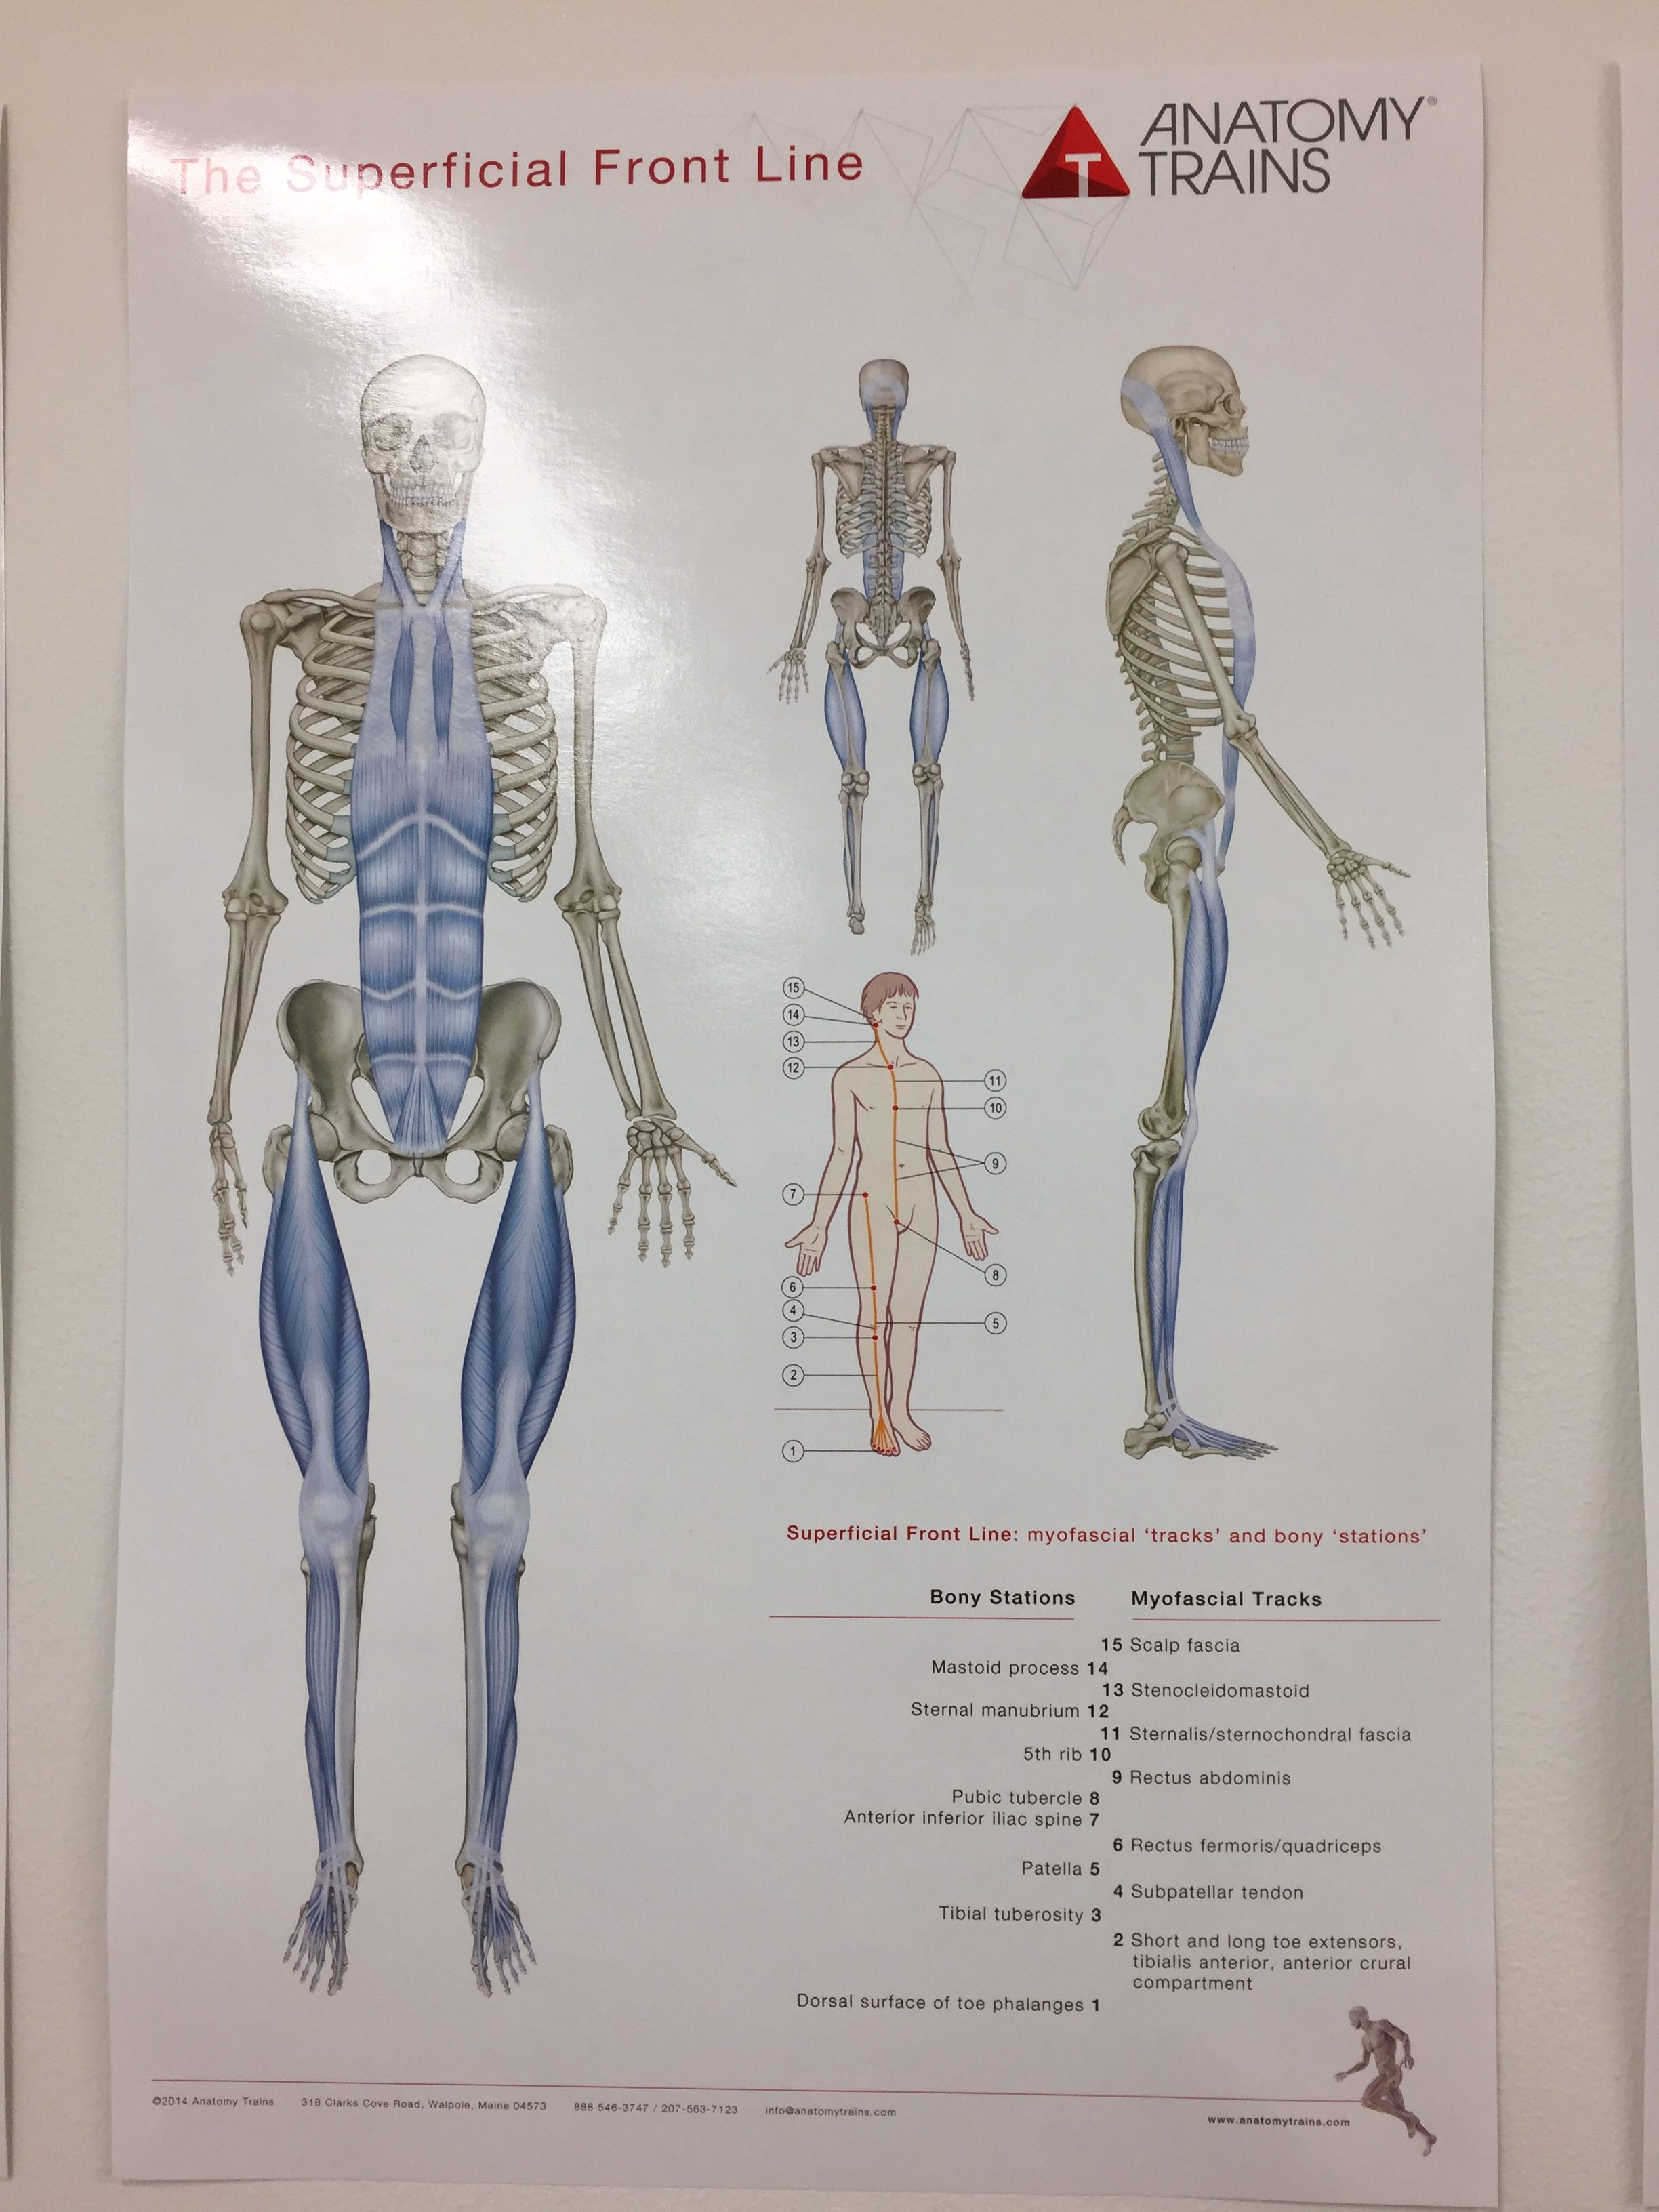 Magnificent Thomas Myers Anatomy Trains Mold - Anatomy Ideas ...